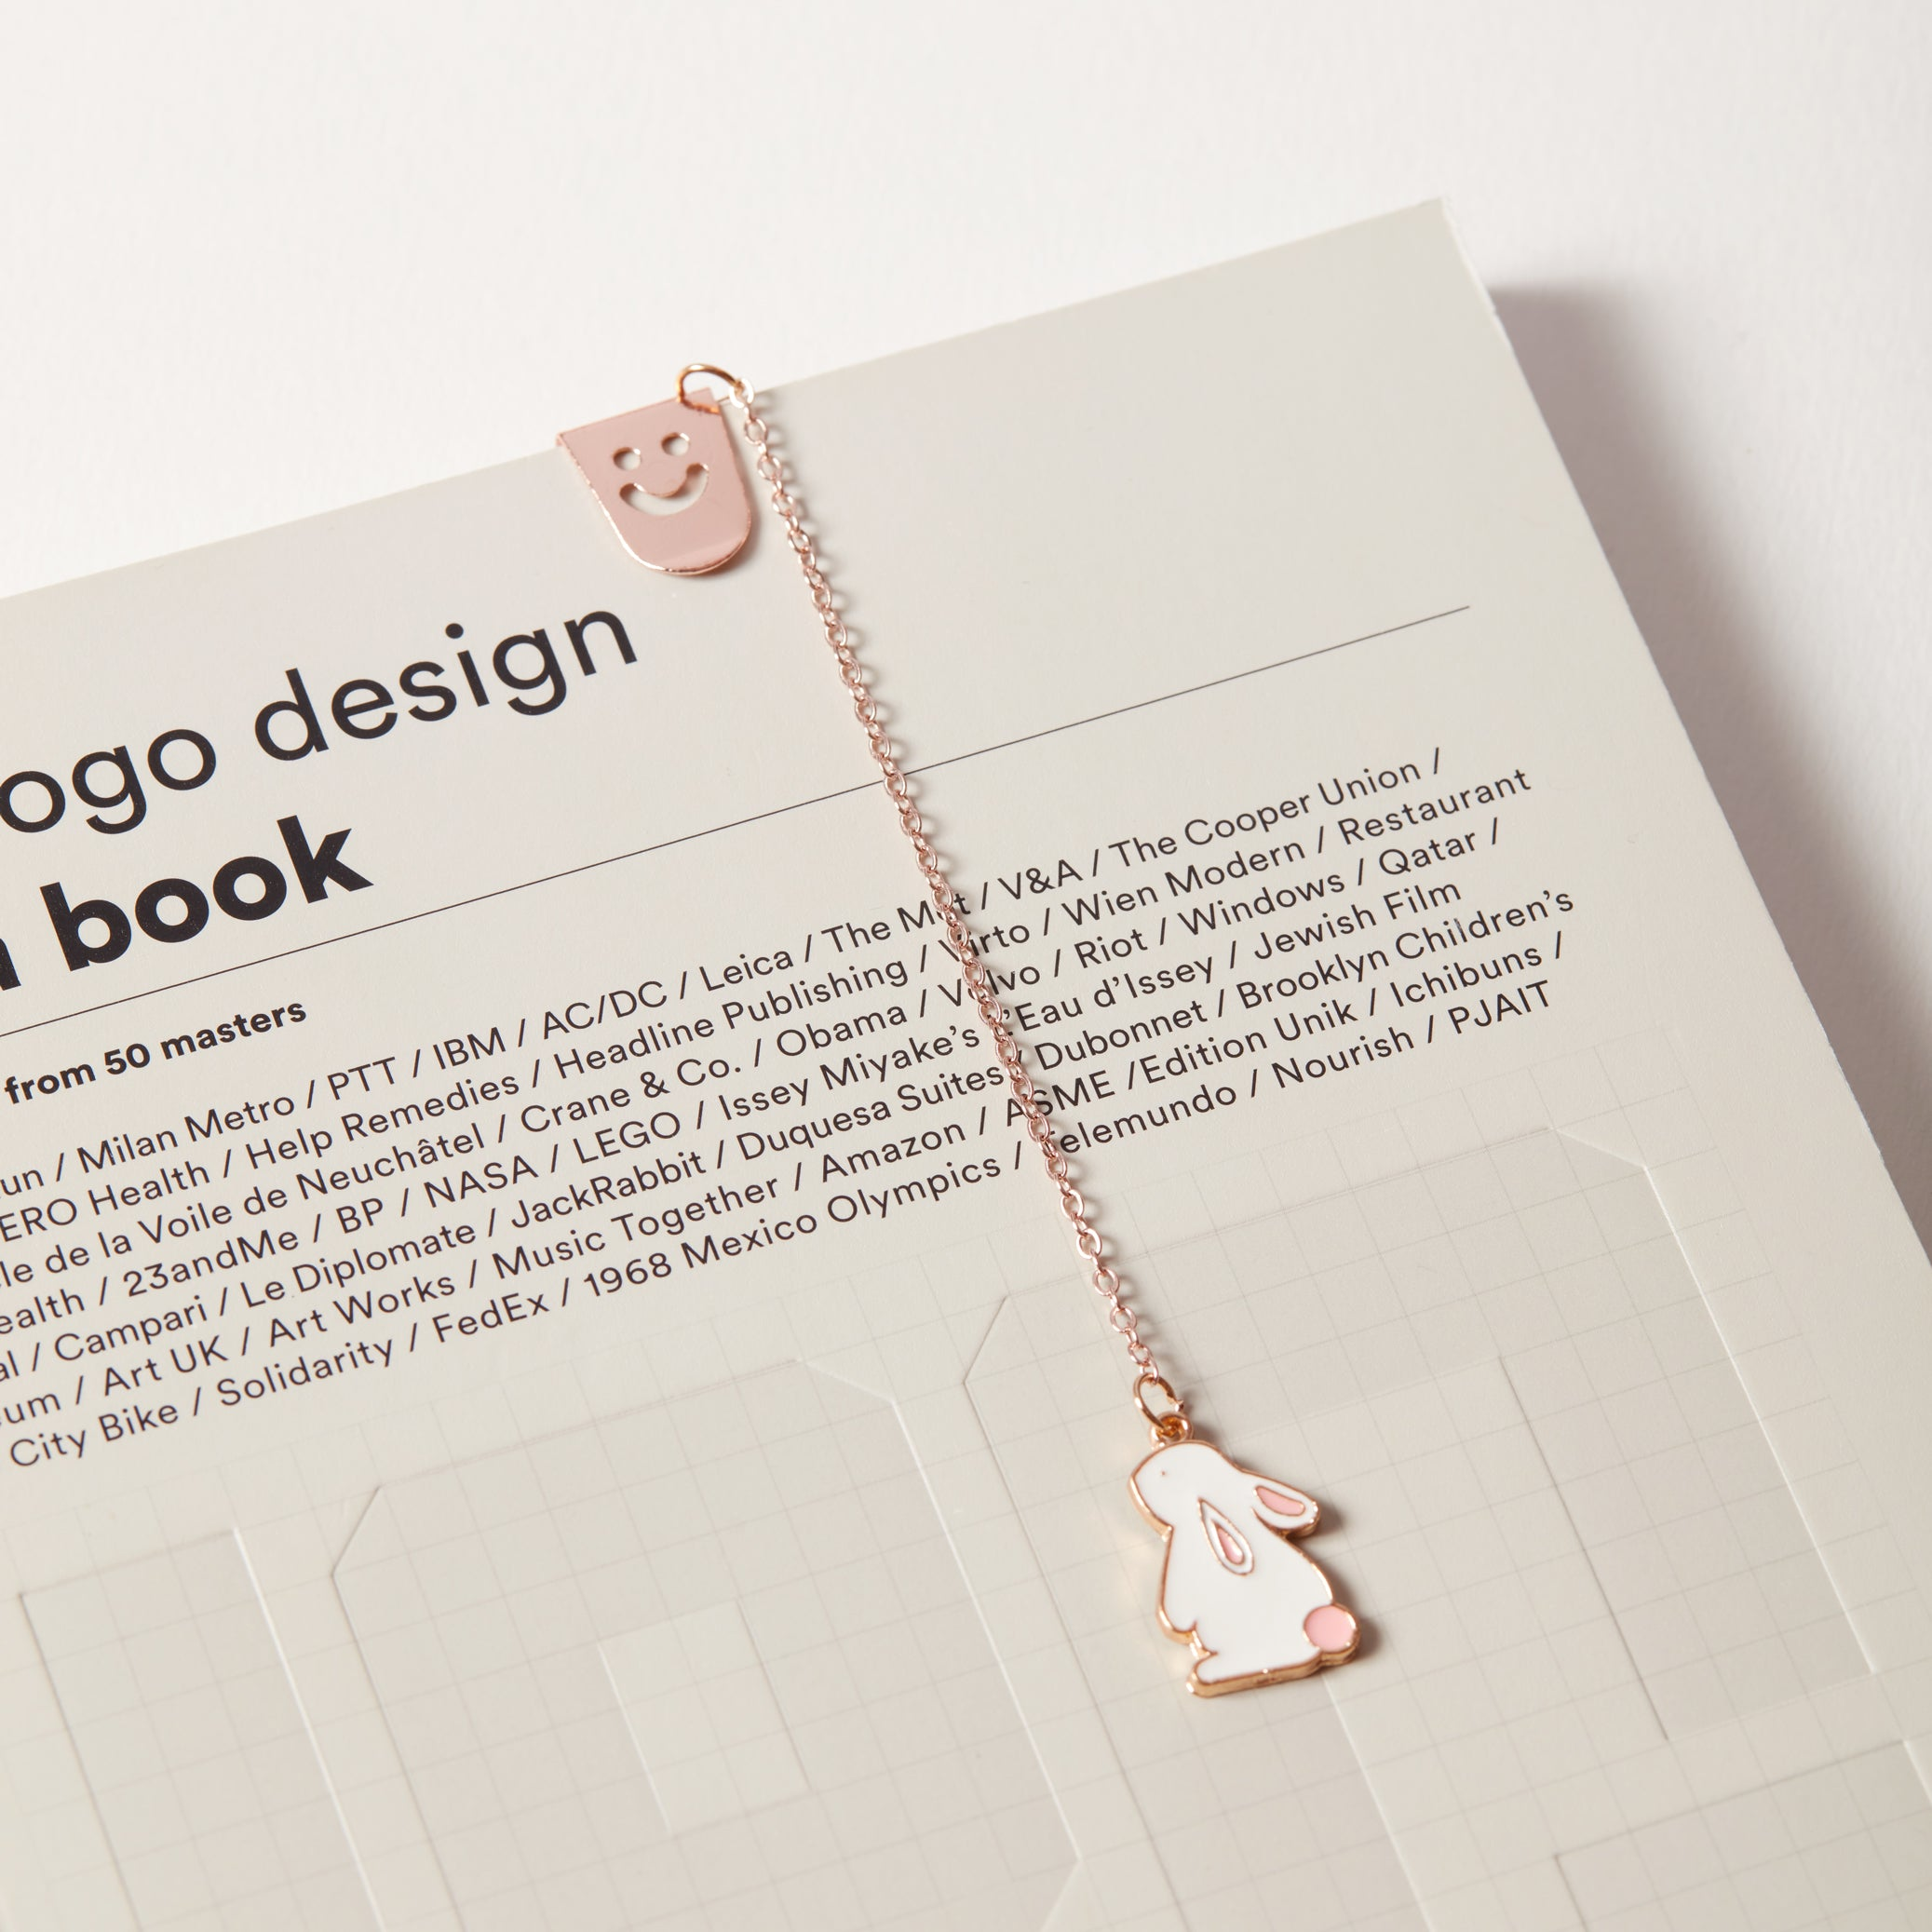 Enamel metal bunny charm bookmark clipped onto a book cover.